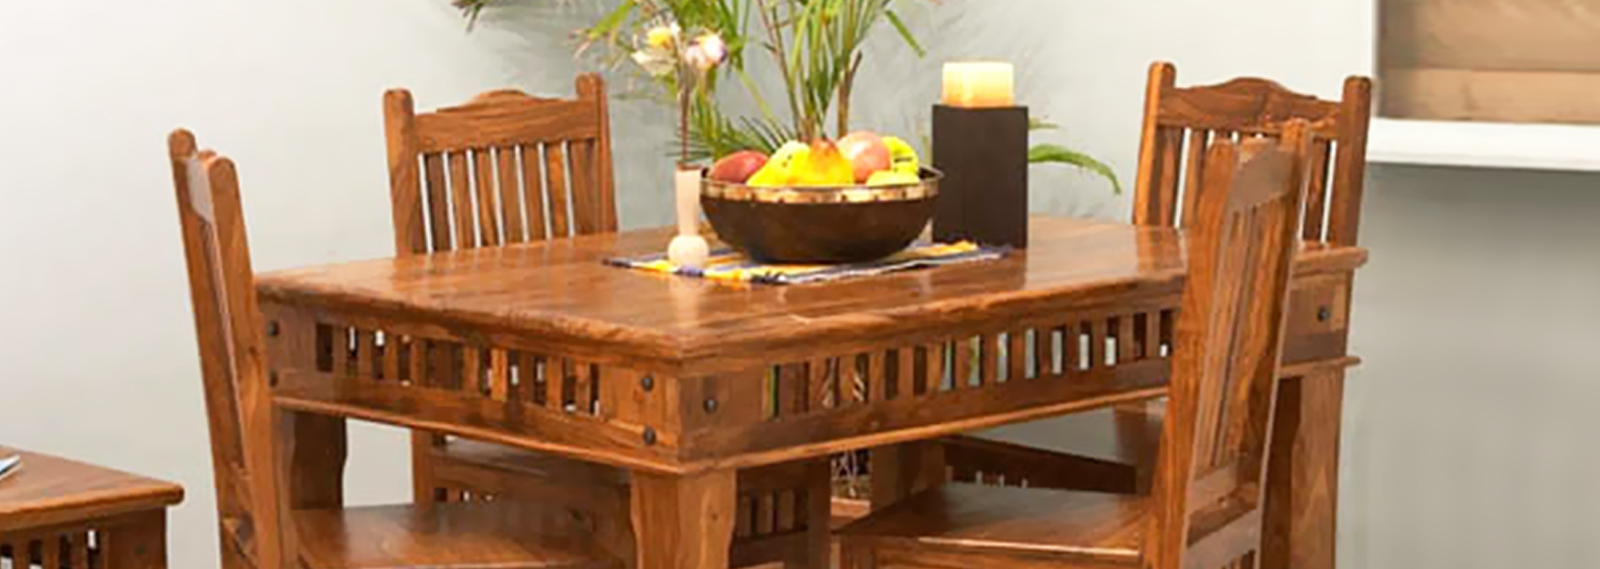 Natural Living Furniture Wooden Furniture Pune Bangalore